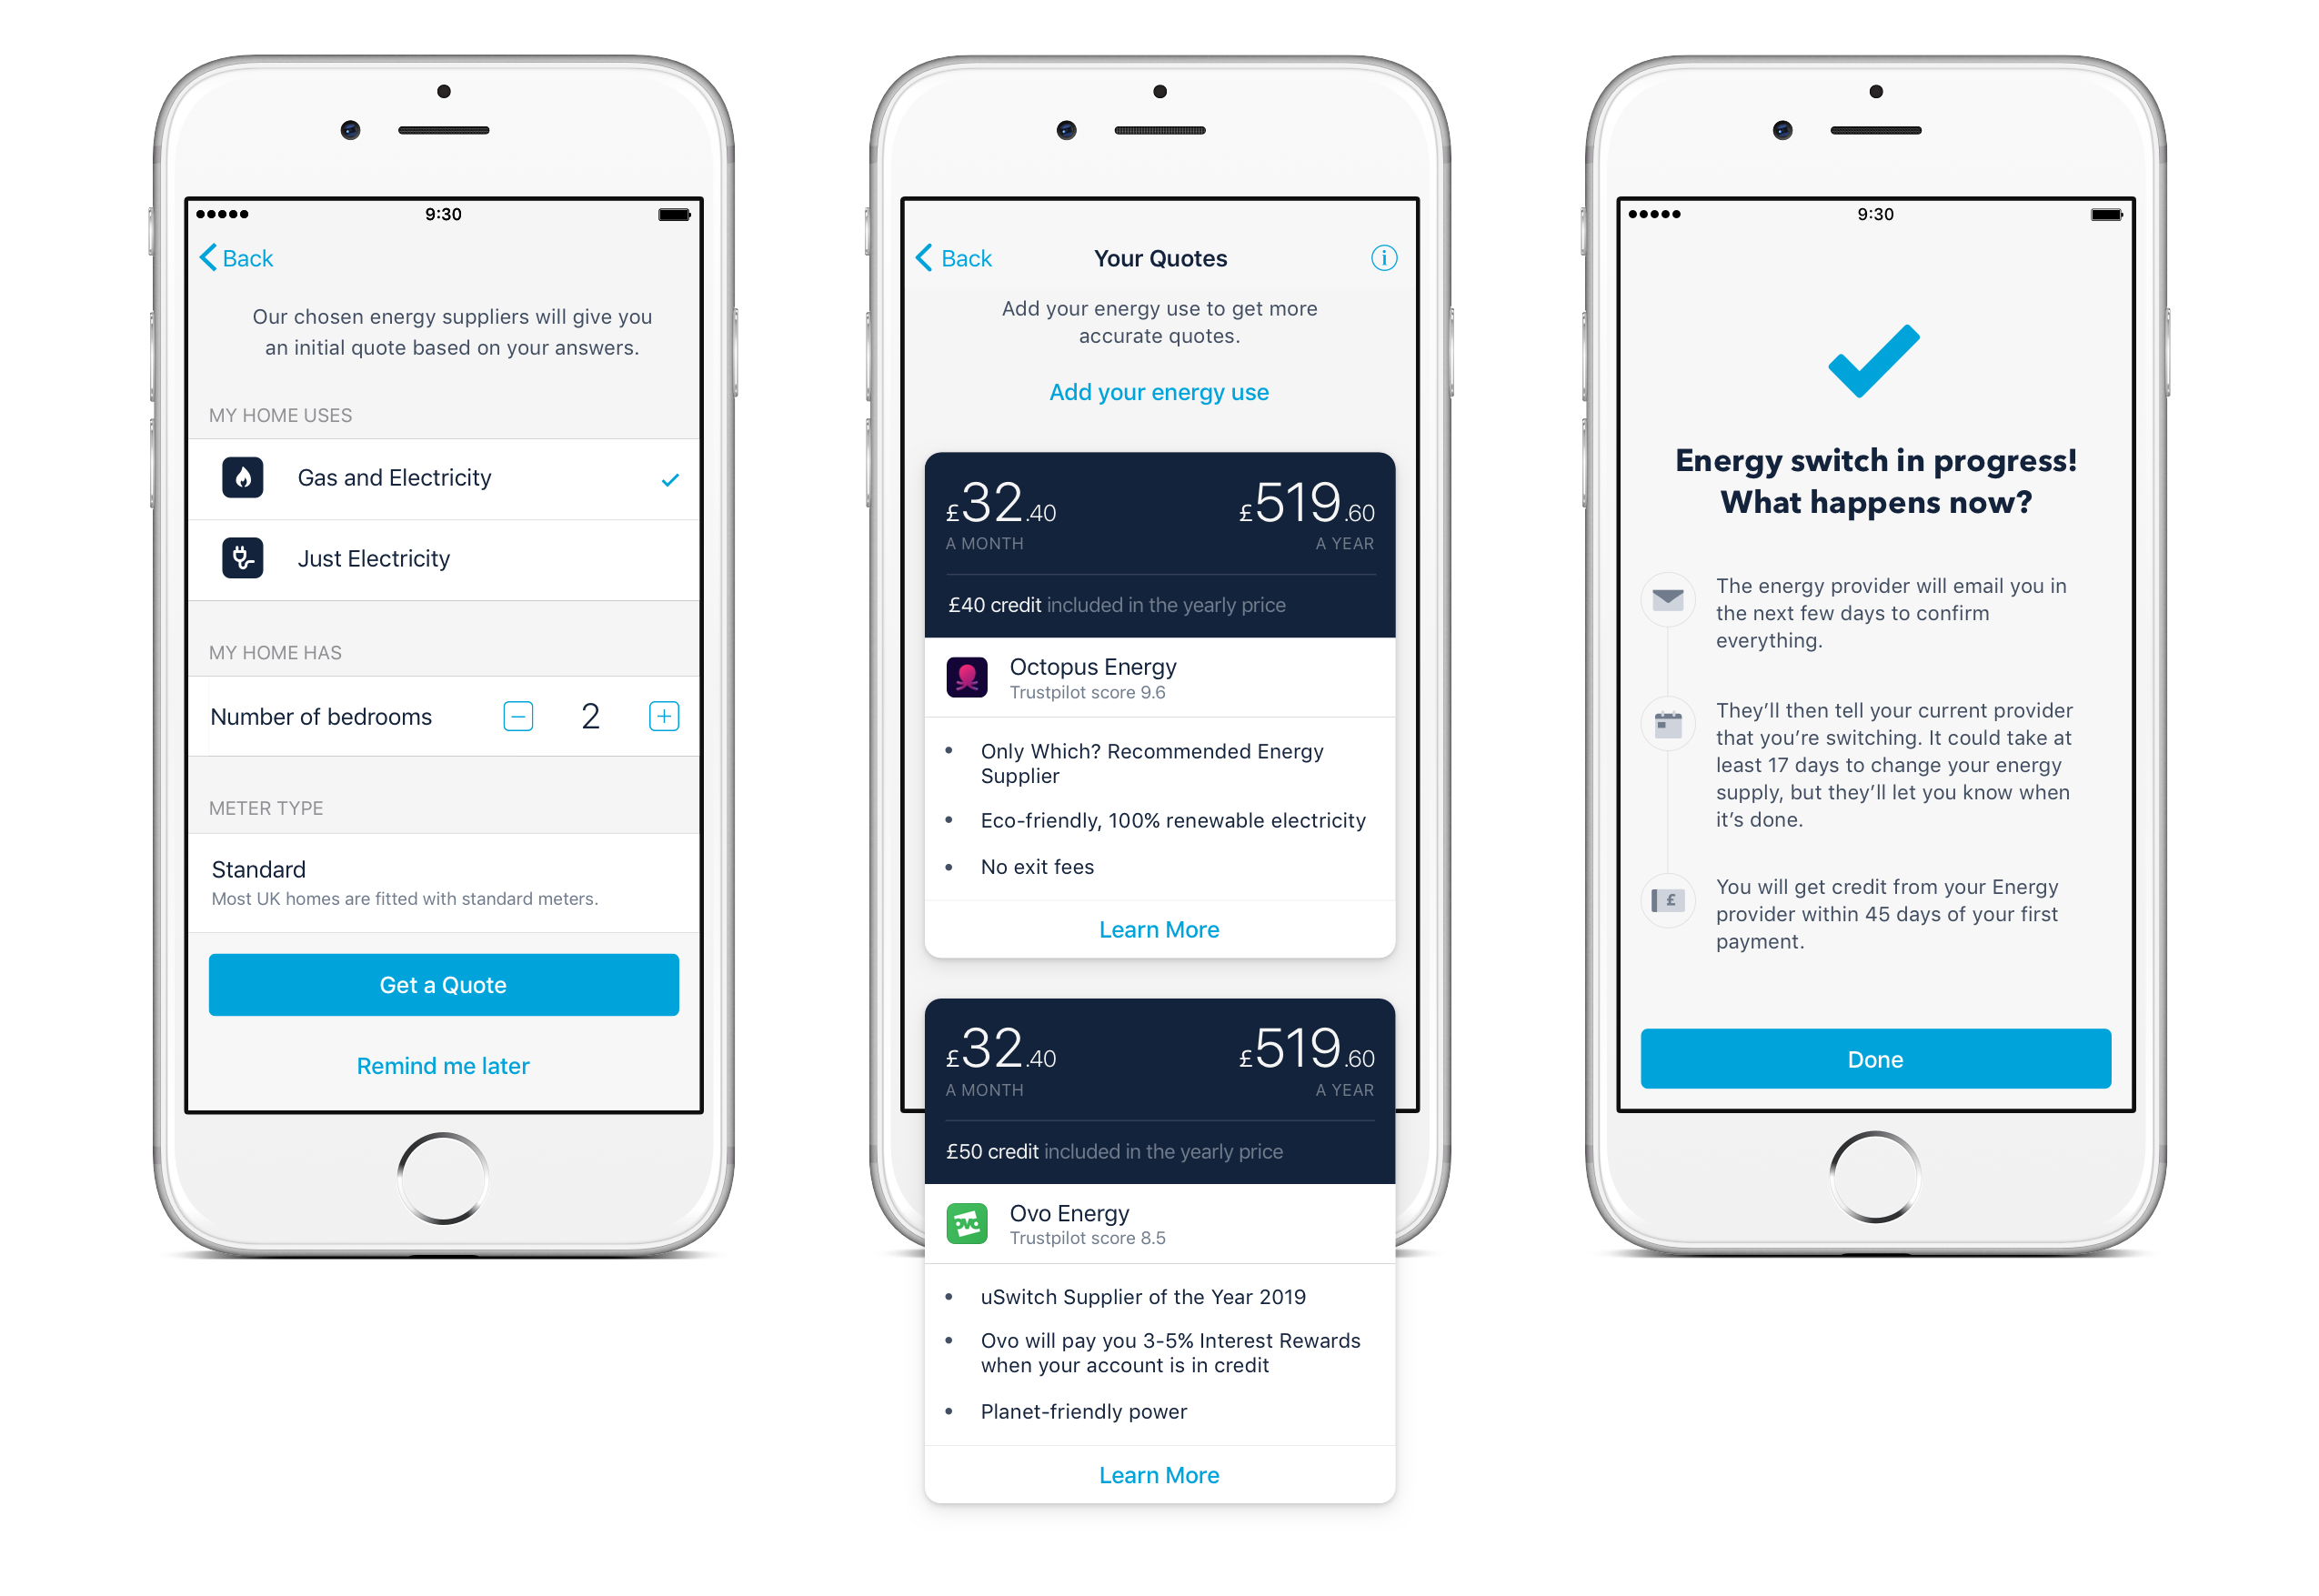 Screens showing the option to switch to OVO Energy or Octopus Energy through the Monzo app